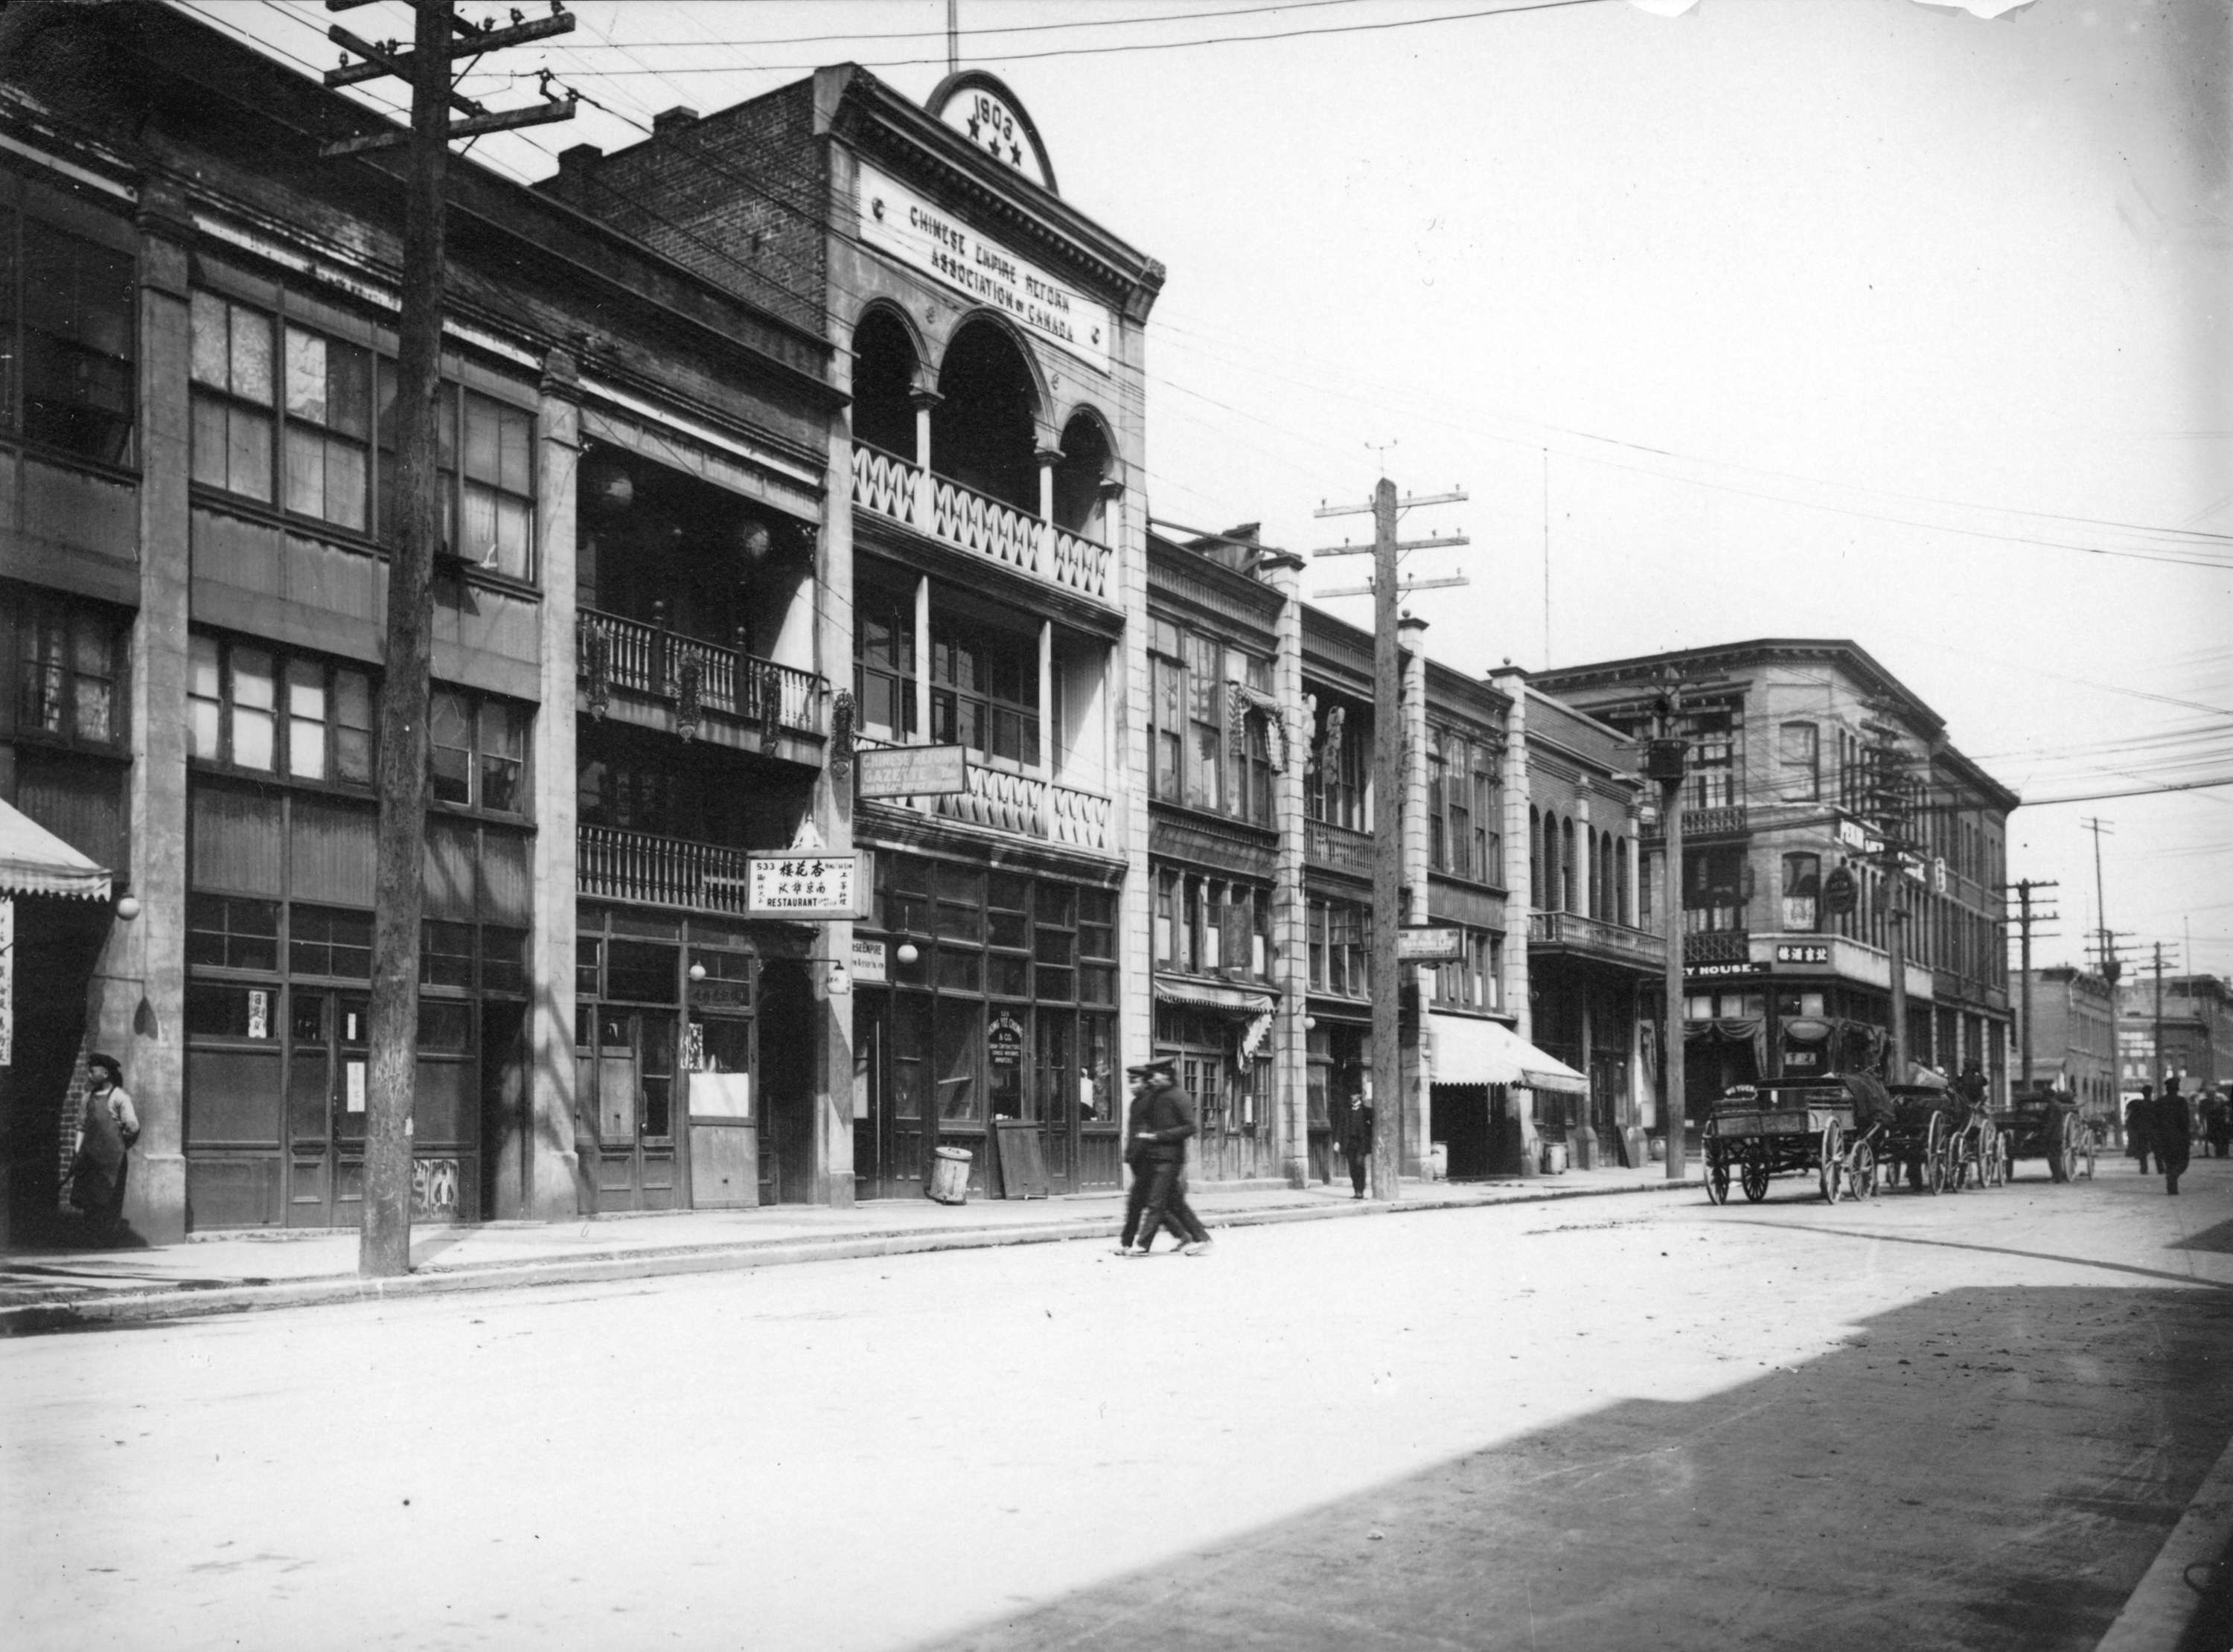 A city street in 1907. A few carriages and pedestrians go down the street past storefronts.